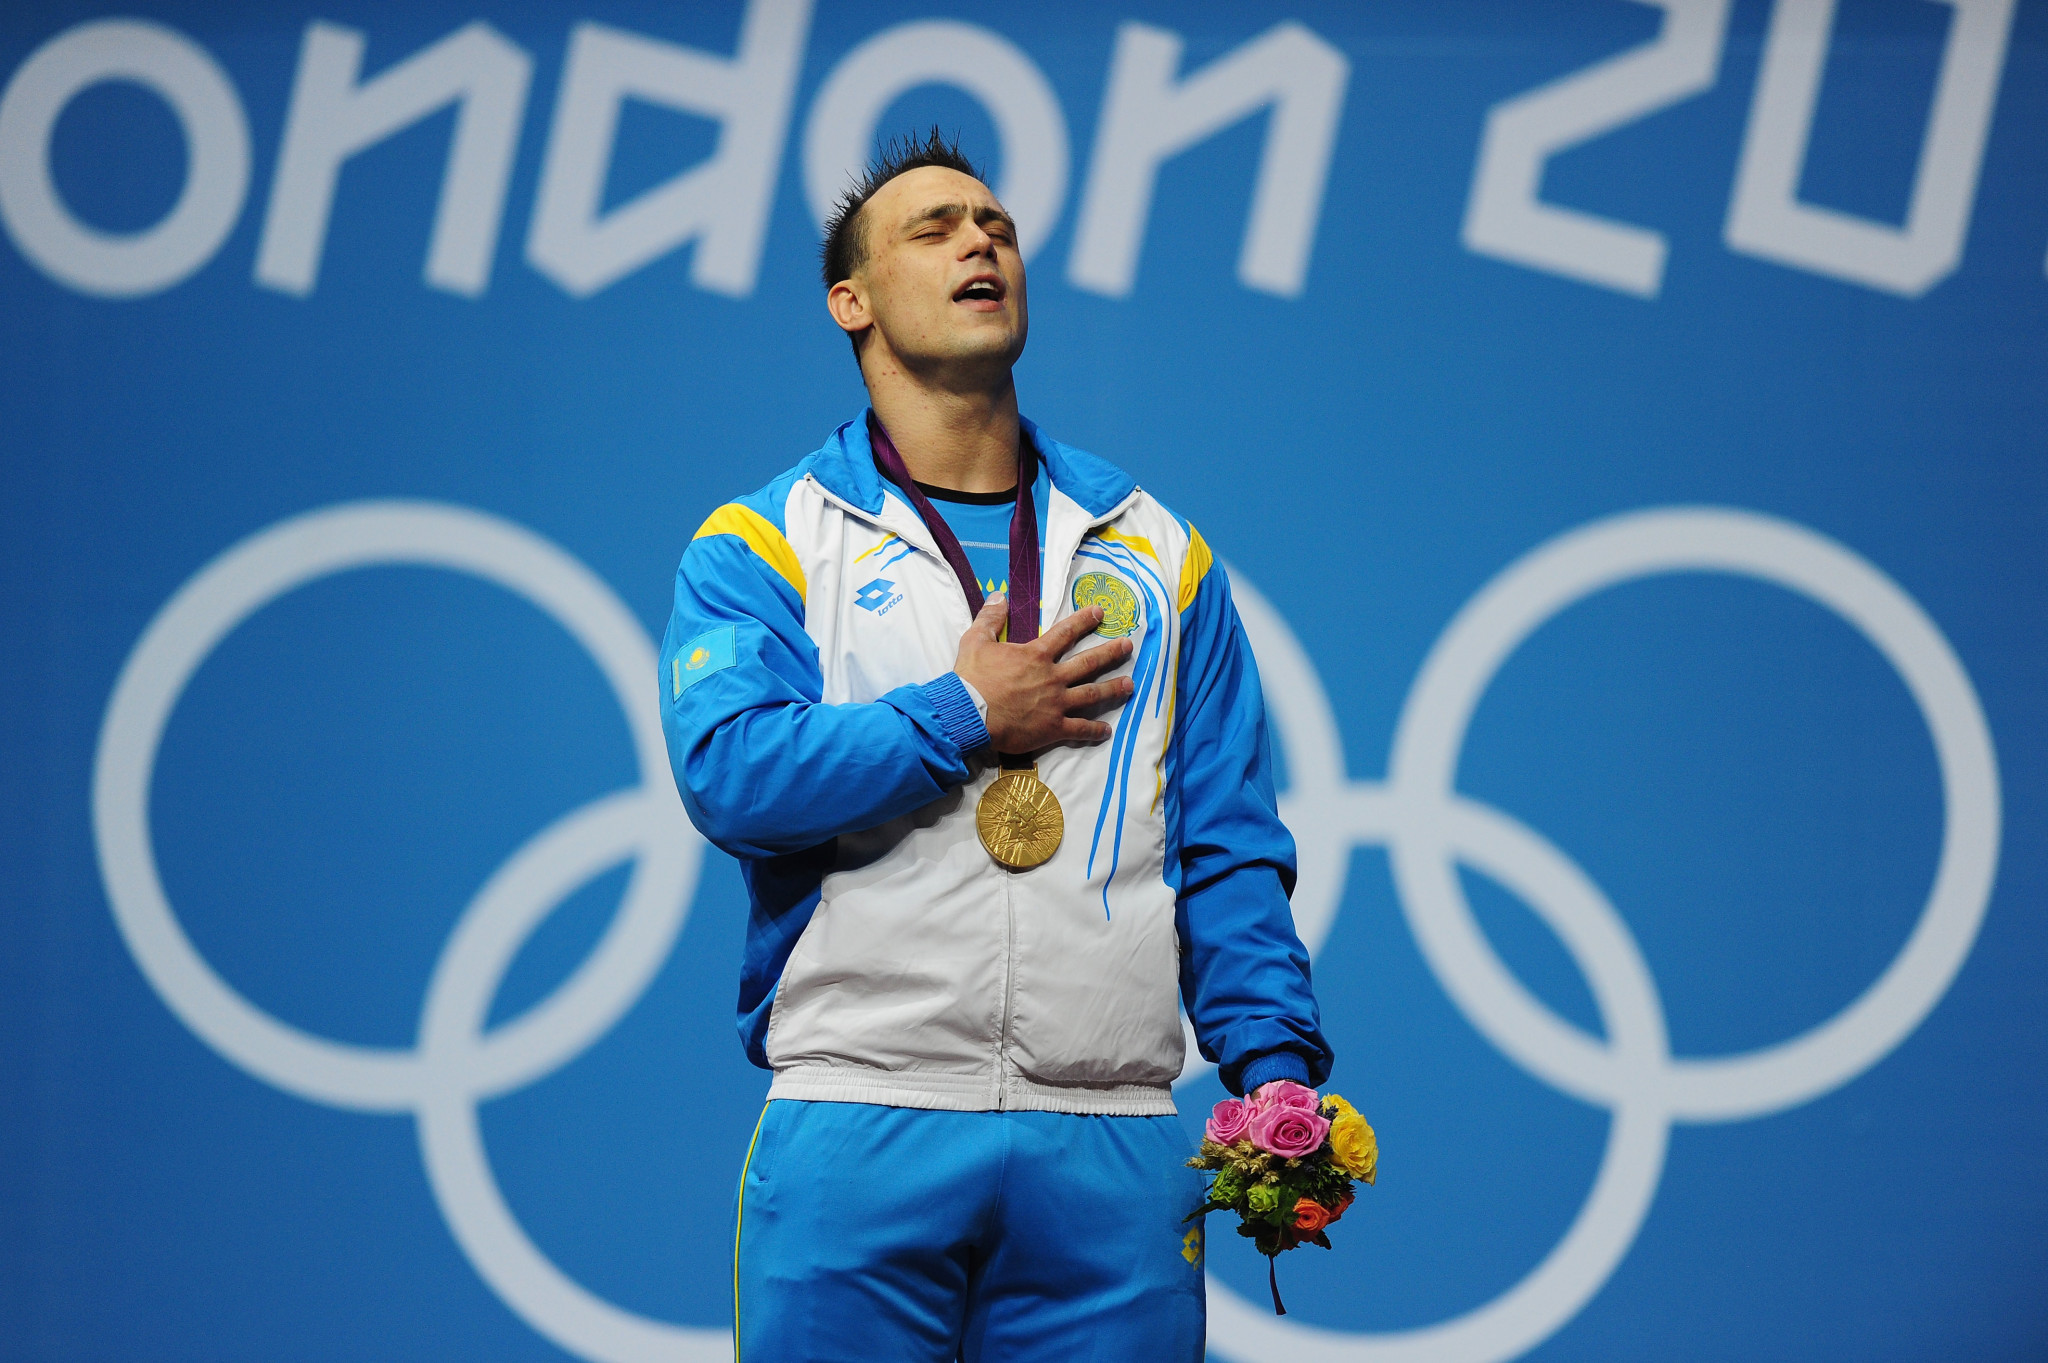 Doubly disqualified weightlifter Ilyin takes first step towards Tokyo 2020 with winning return